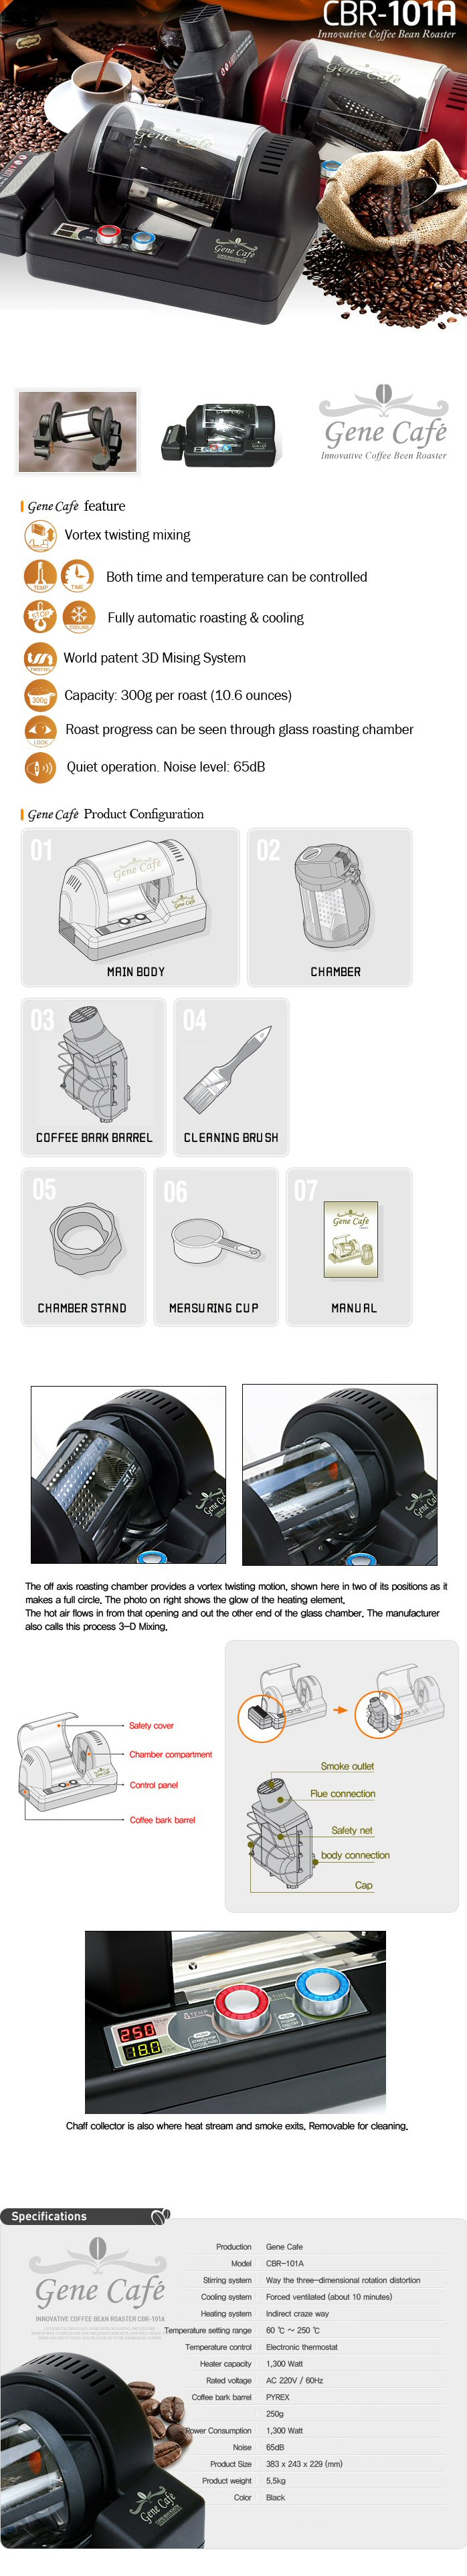 Gene Cafe Green Bean Coffee Roaster Specifications